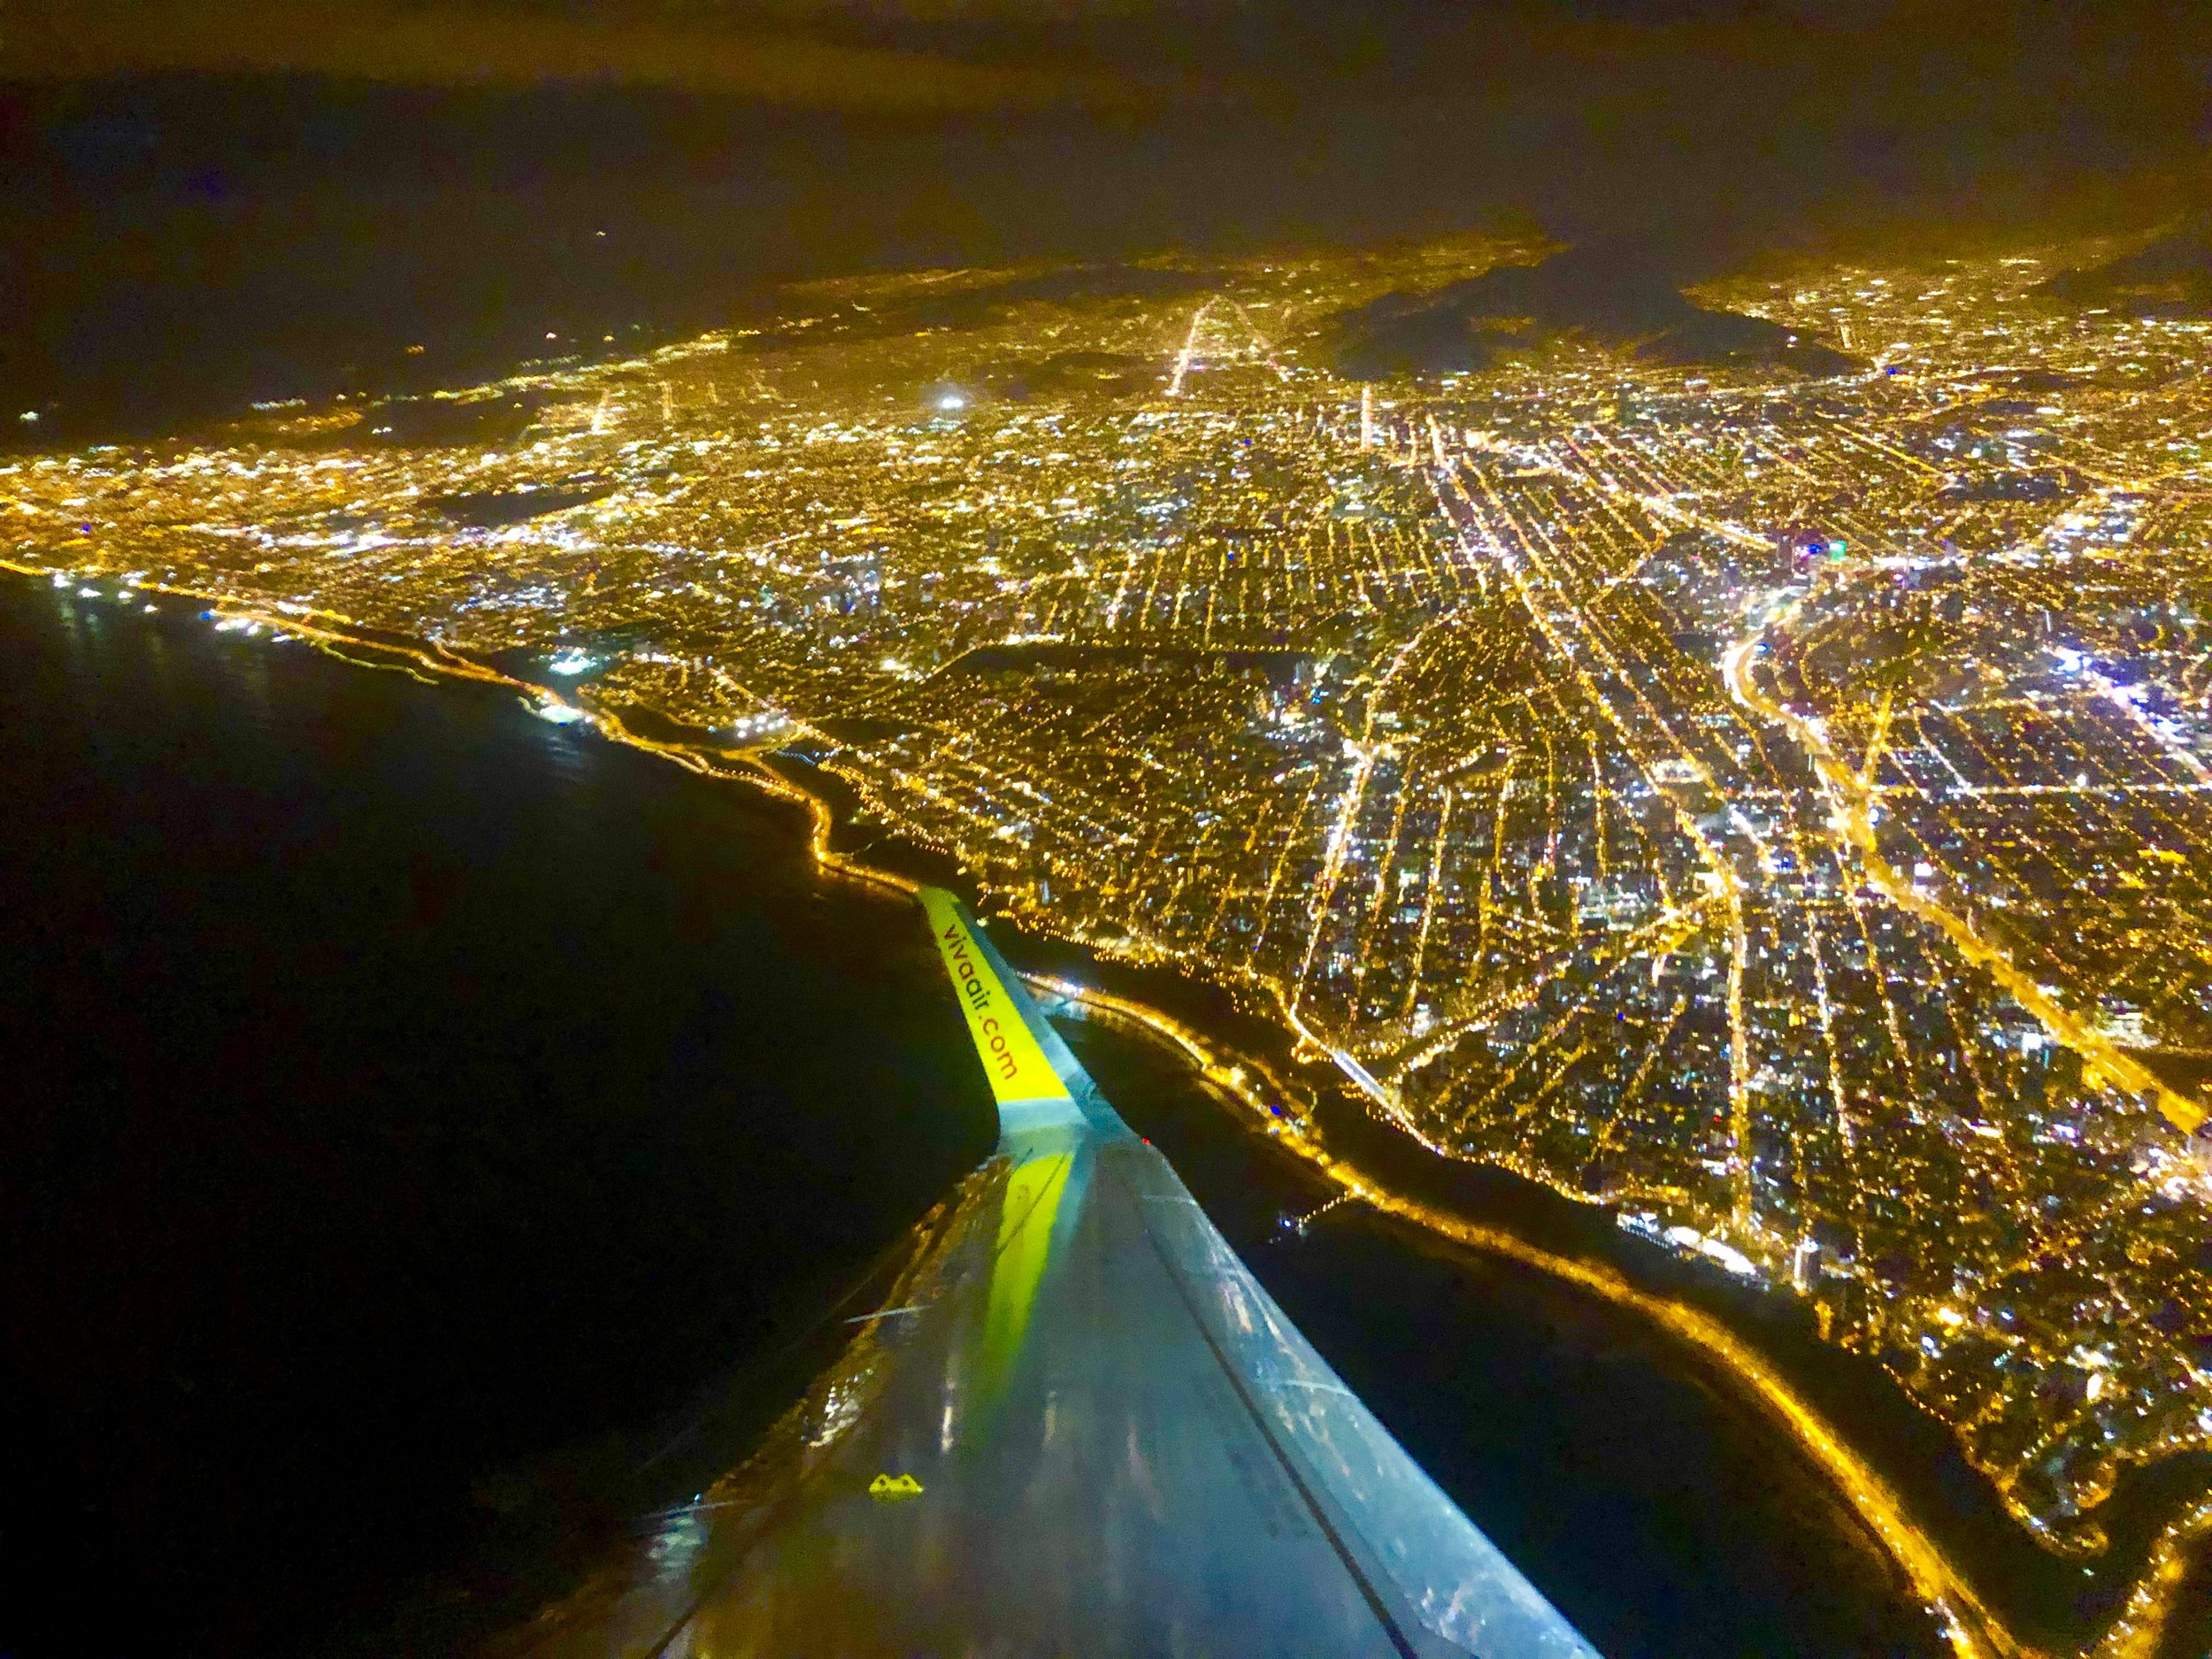 Goodbye Lima… I will Miss You. Thank You For Reminding Me Of The Importance Of Business Operations